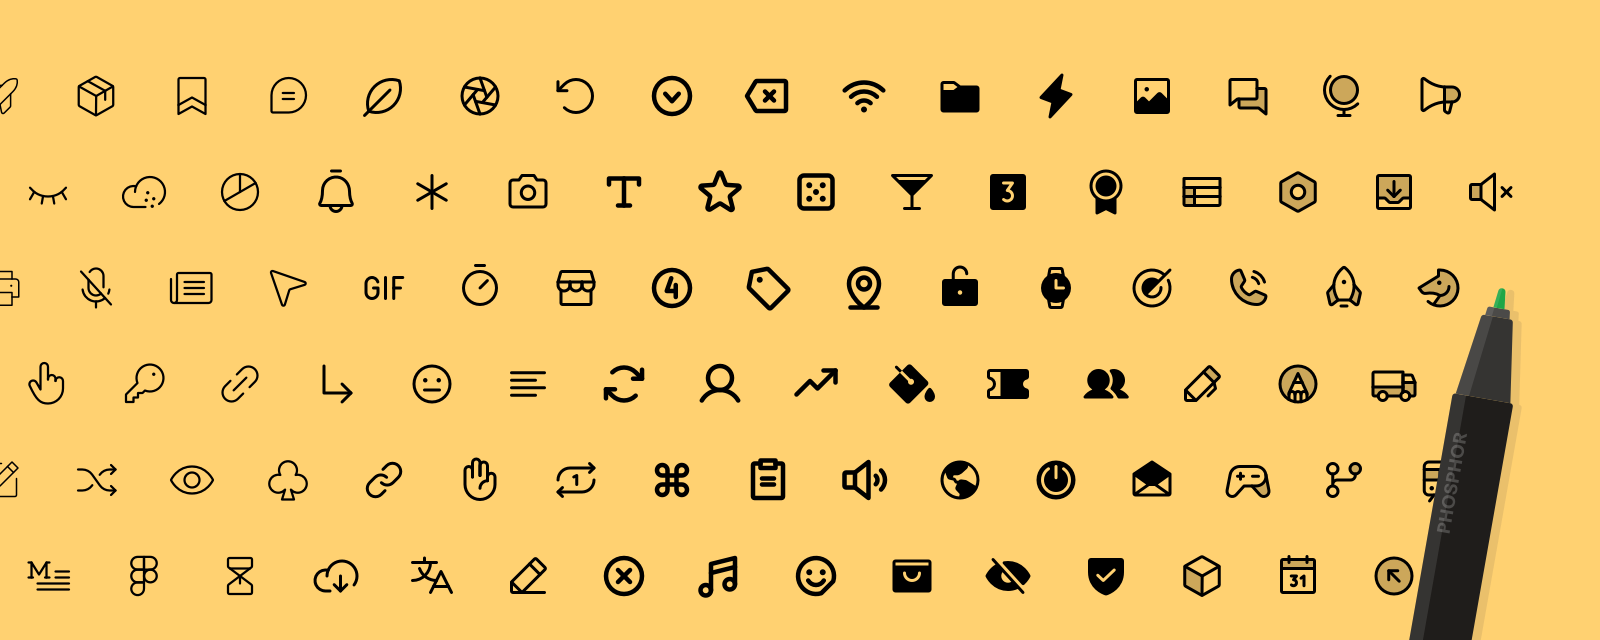 An array of Phosphor Icons from light to bold weights, with a marker resting on the side